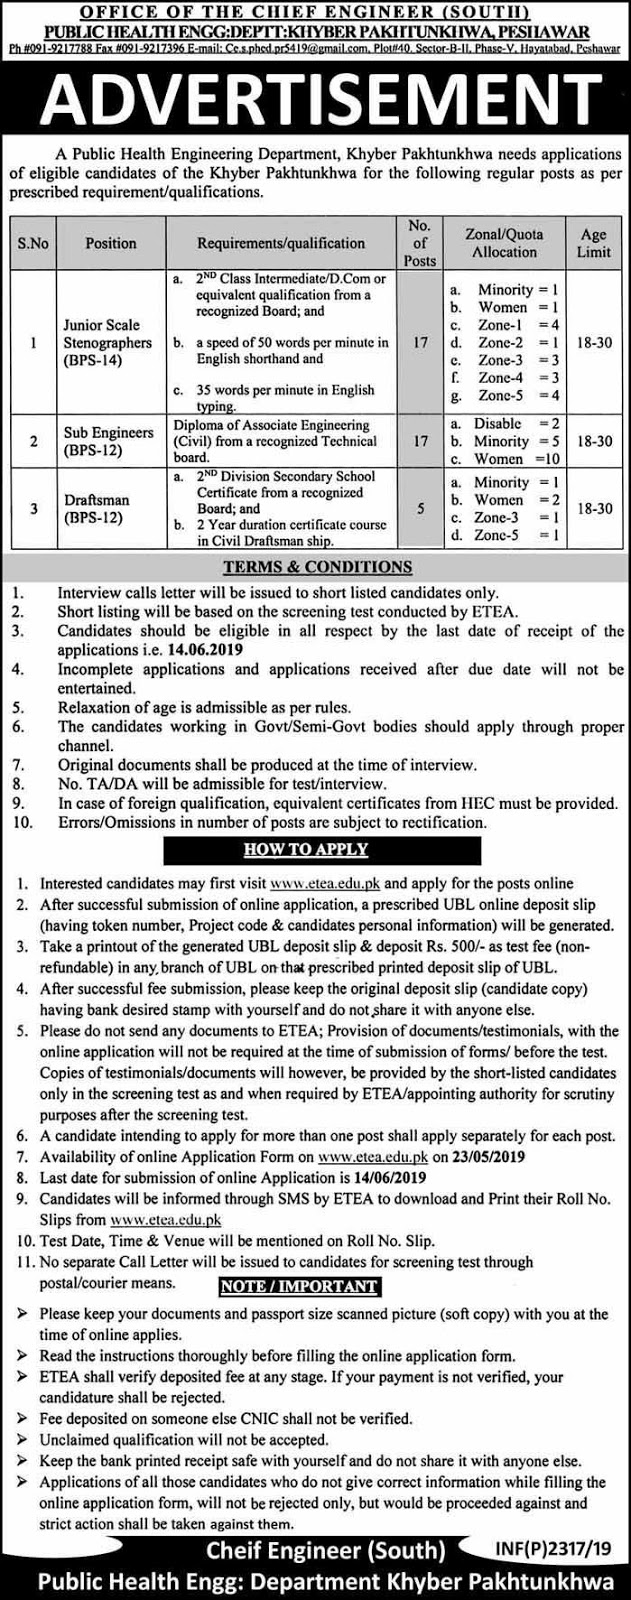 Advertisement for Public Health Engineering Department KPK Jobs